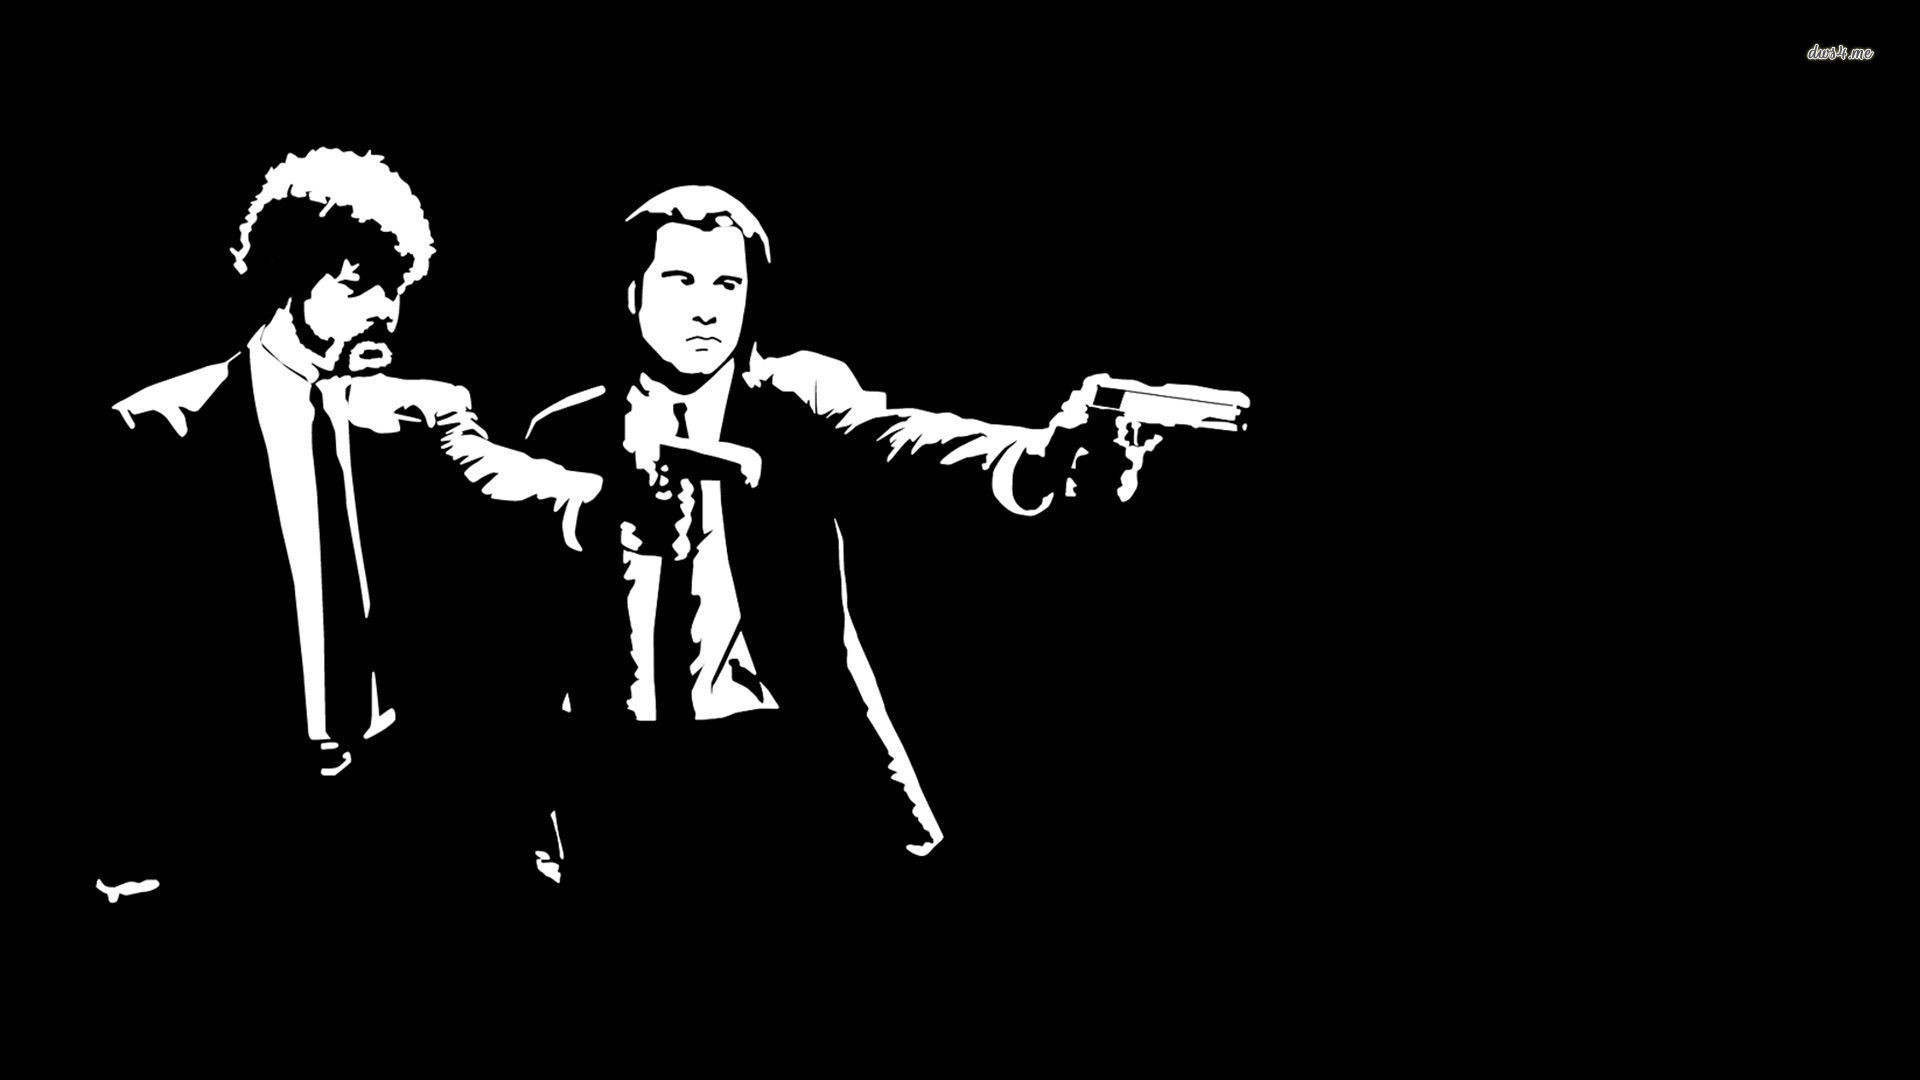 Pulp Fiction Wallpapers (68 Wallpapers)